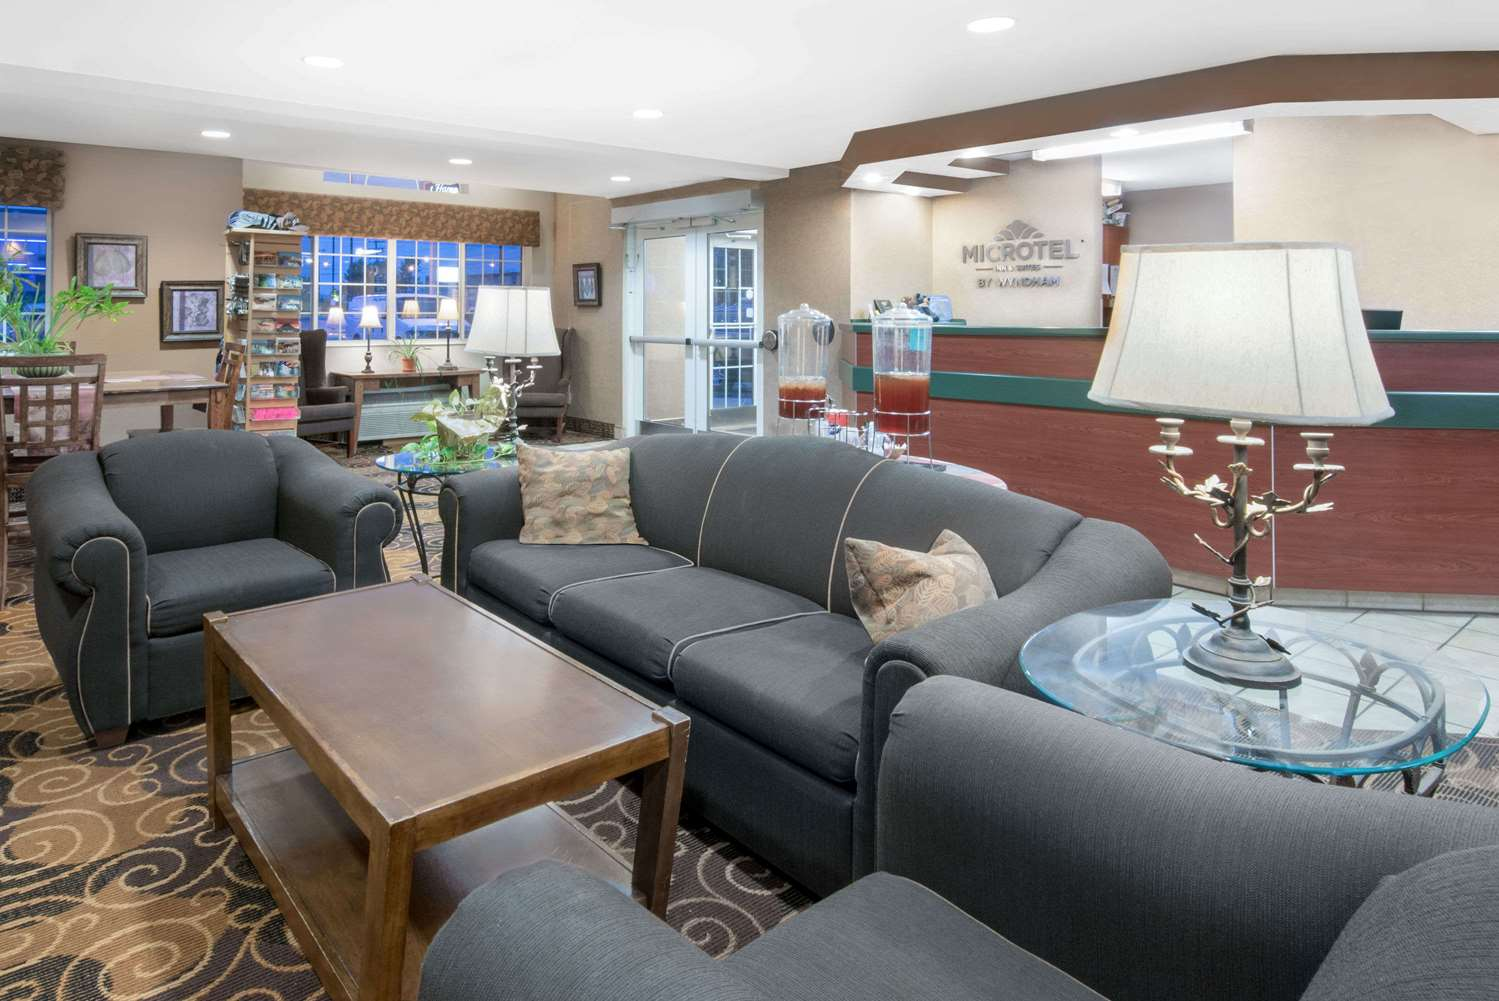 Lobby - Microtel Inn & Suites by Wyndham Rapid City